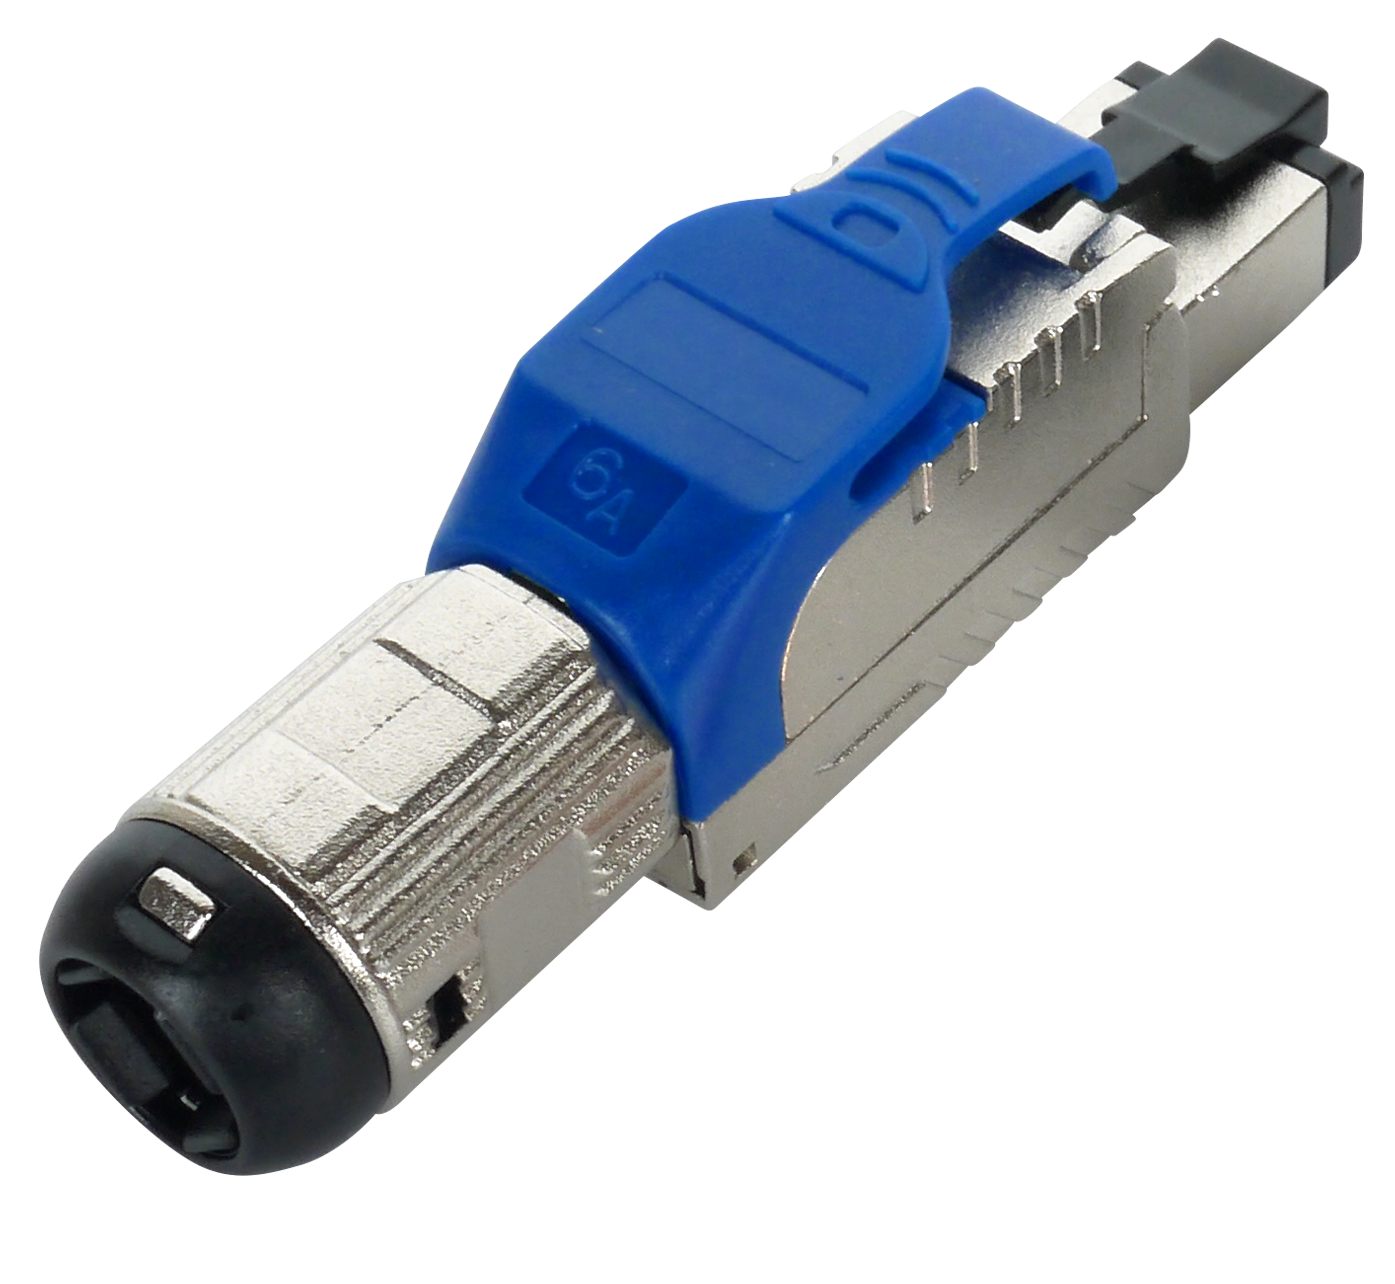 Cat 6A STP Blue Field Termination RJ45 Connector - Cat 6A full shielded toolfree plug